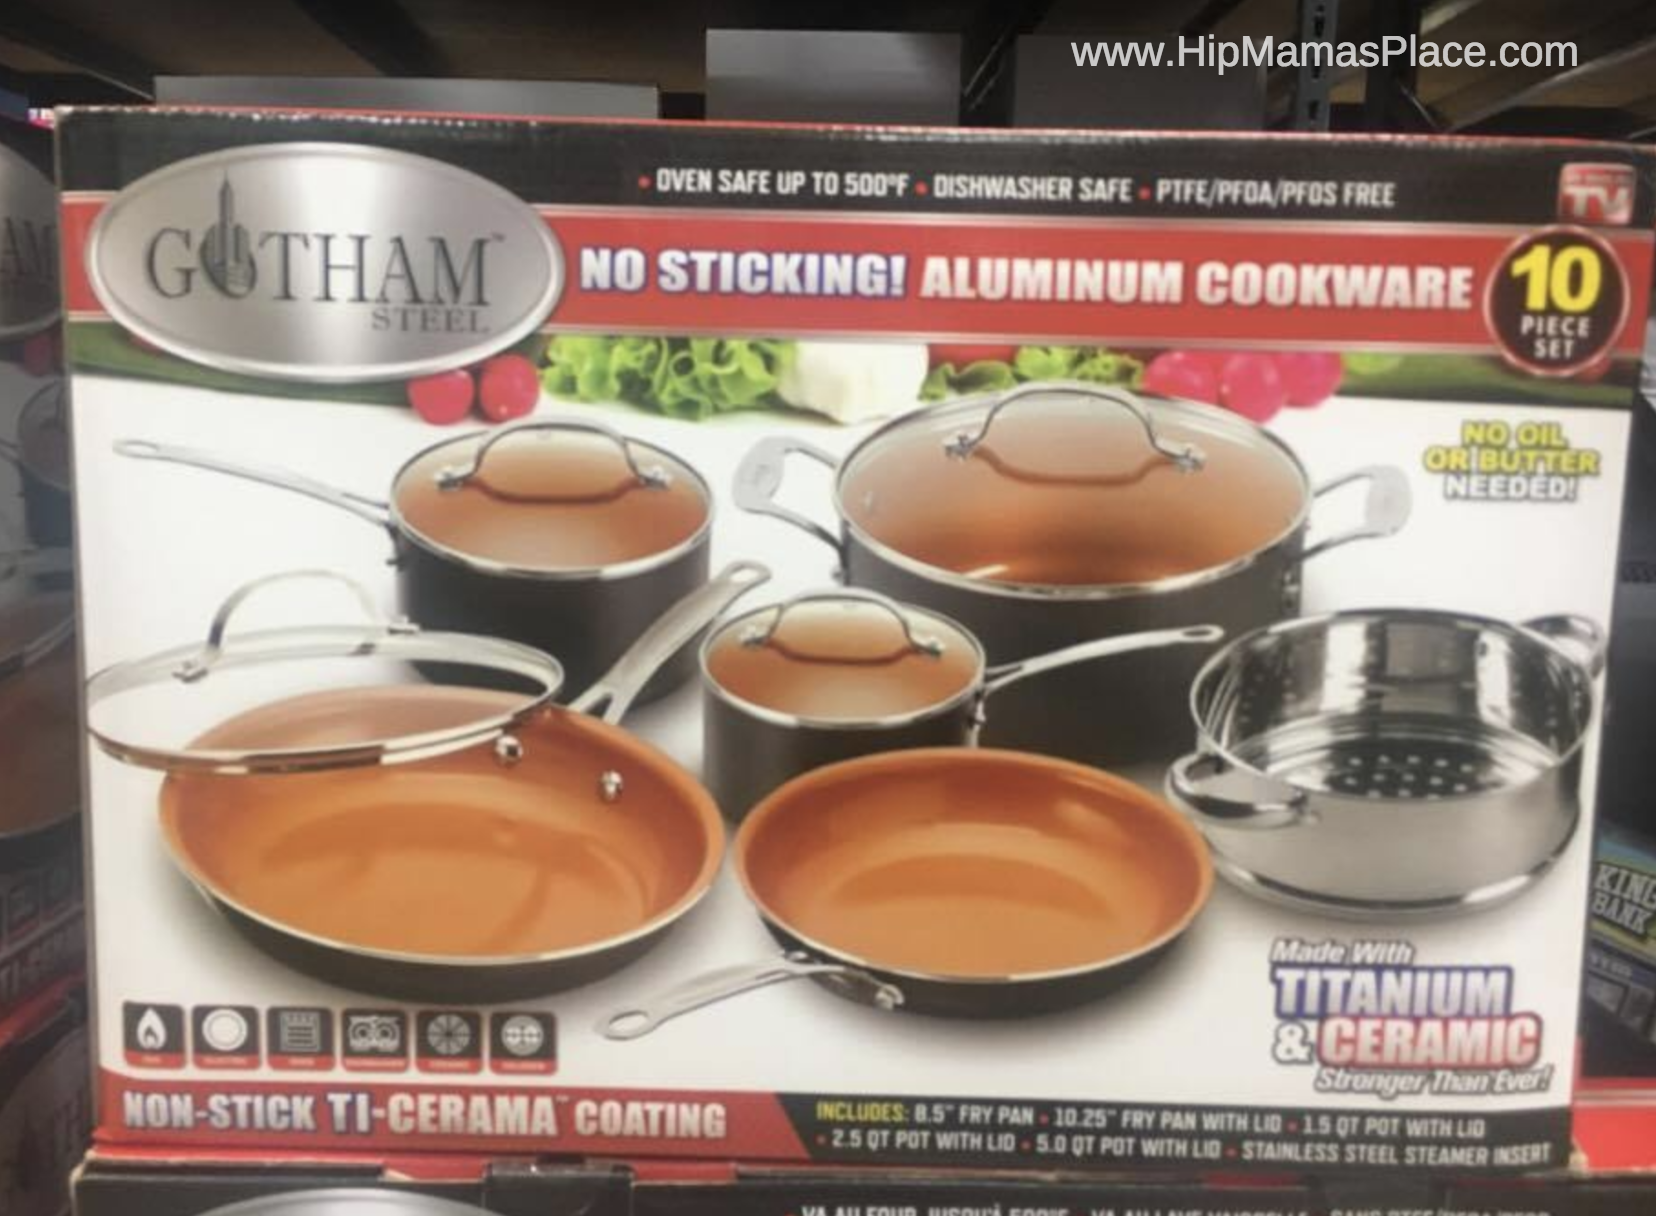 This Gotham Steel 10-Pc. Aluminum Cookware Set ($89.99)– this cookware set is made with a non-stick ti-cerama coating, meaning no oil or butter is needed. You can use these pieces in gas, electric, ceramic and halogen ovens. They are dishwasher safe and PTFE-, PFOA- and PFOS-free.